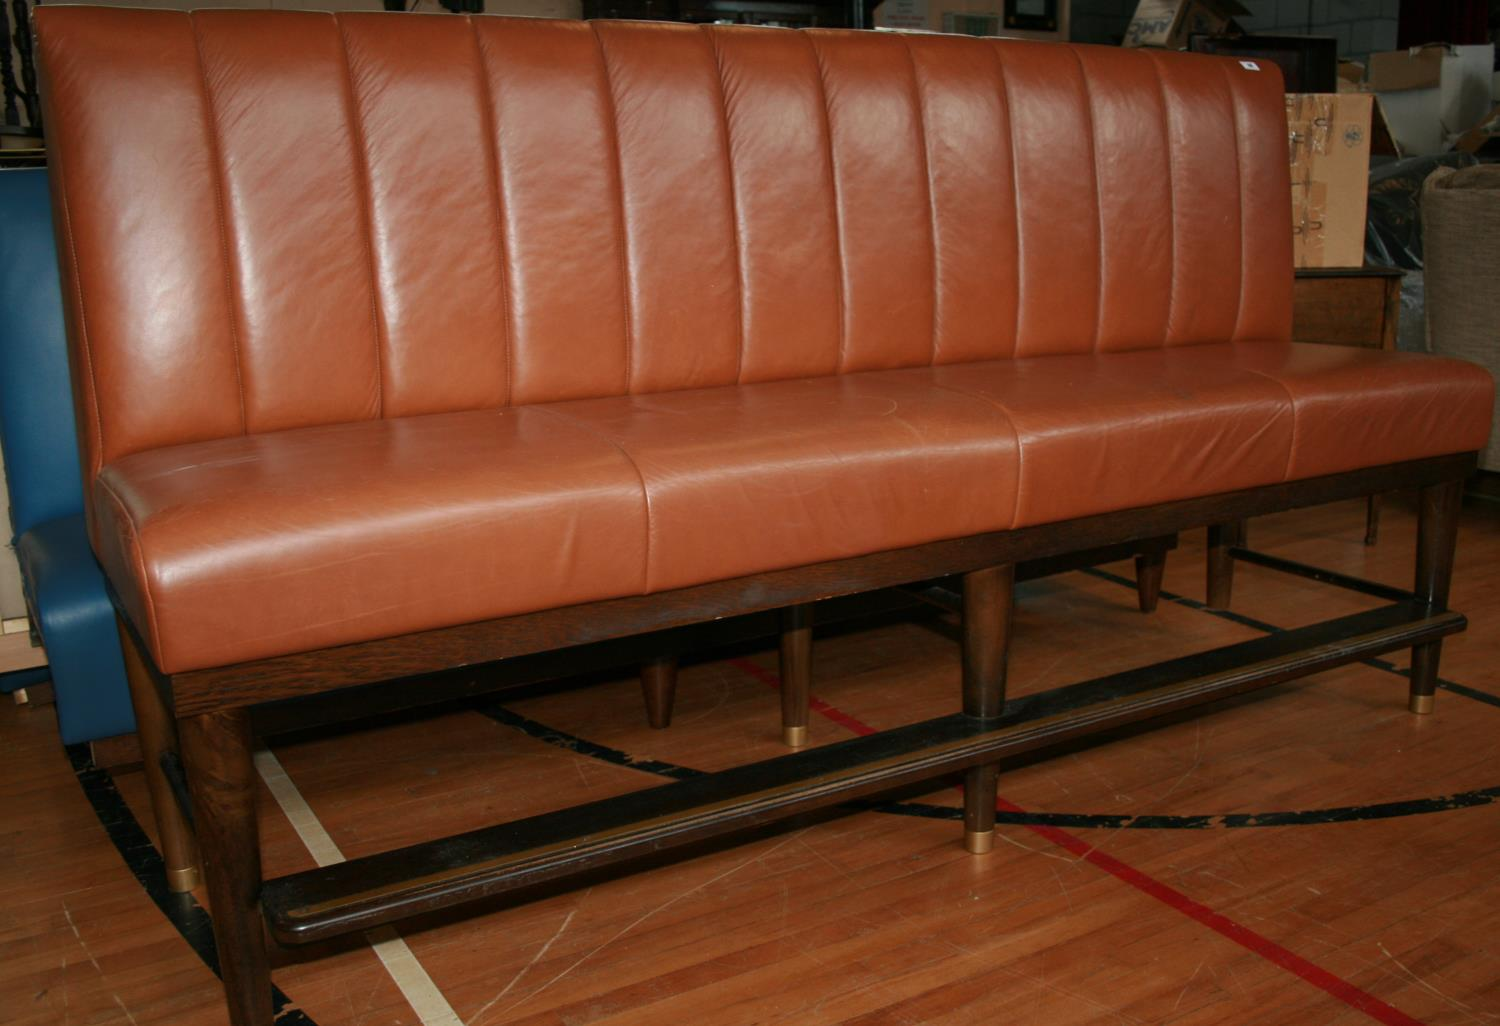 Fine quality fixed seating brown leather upholstered high seat with footrail and brass embellishment - Image 2 of 3